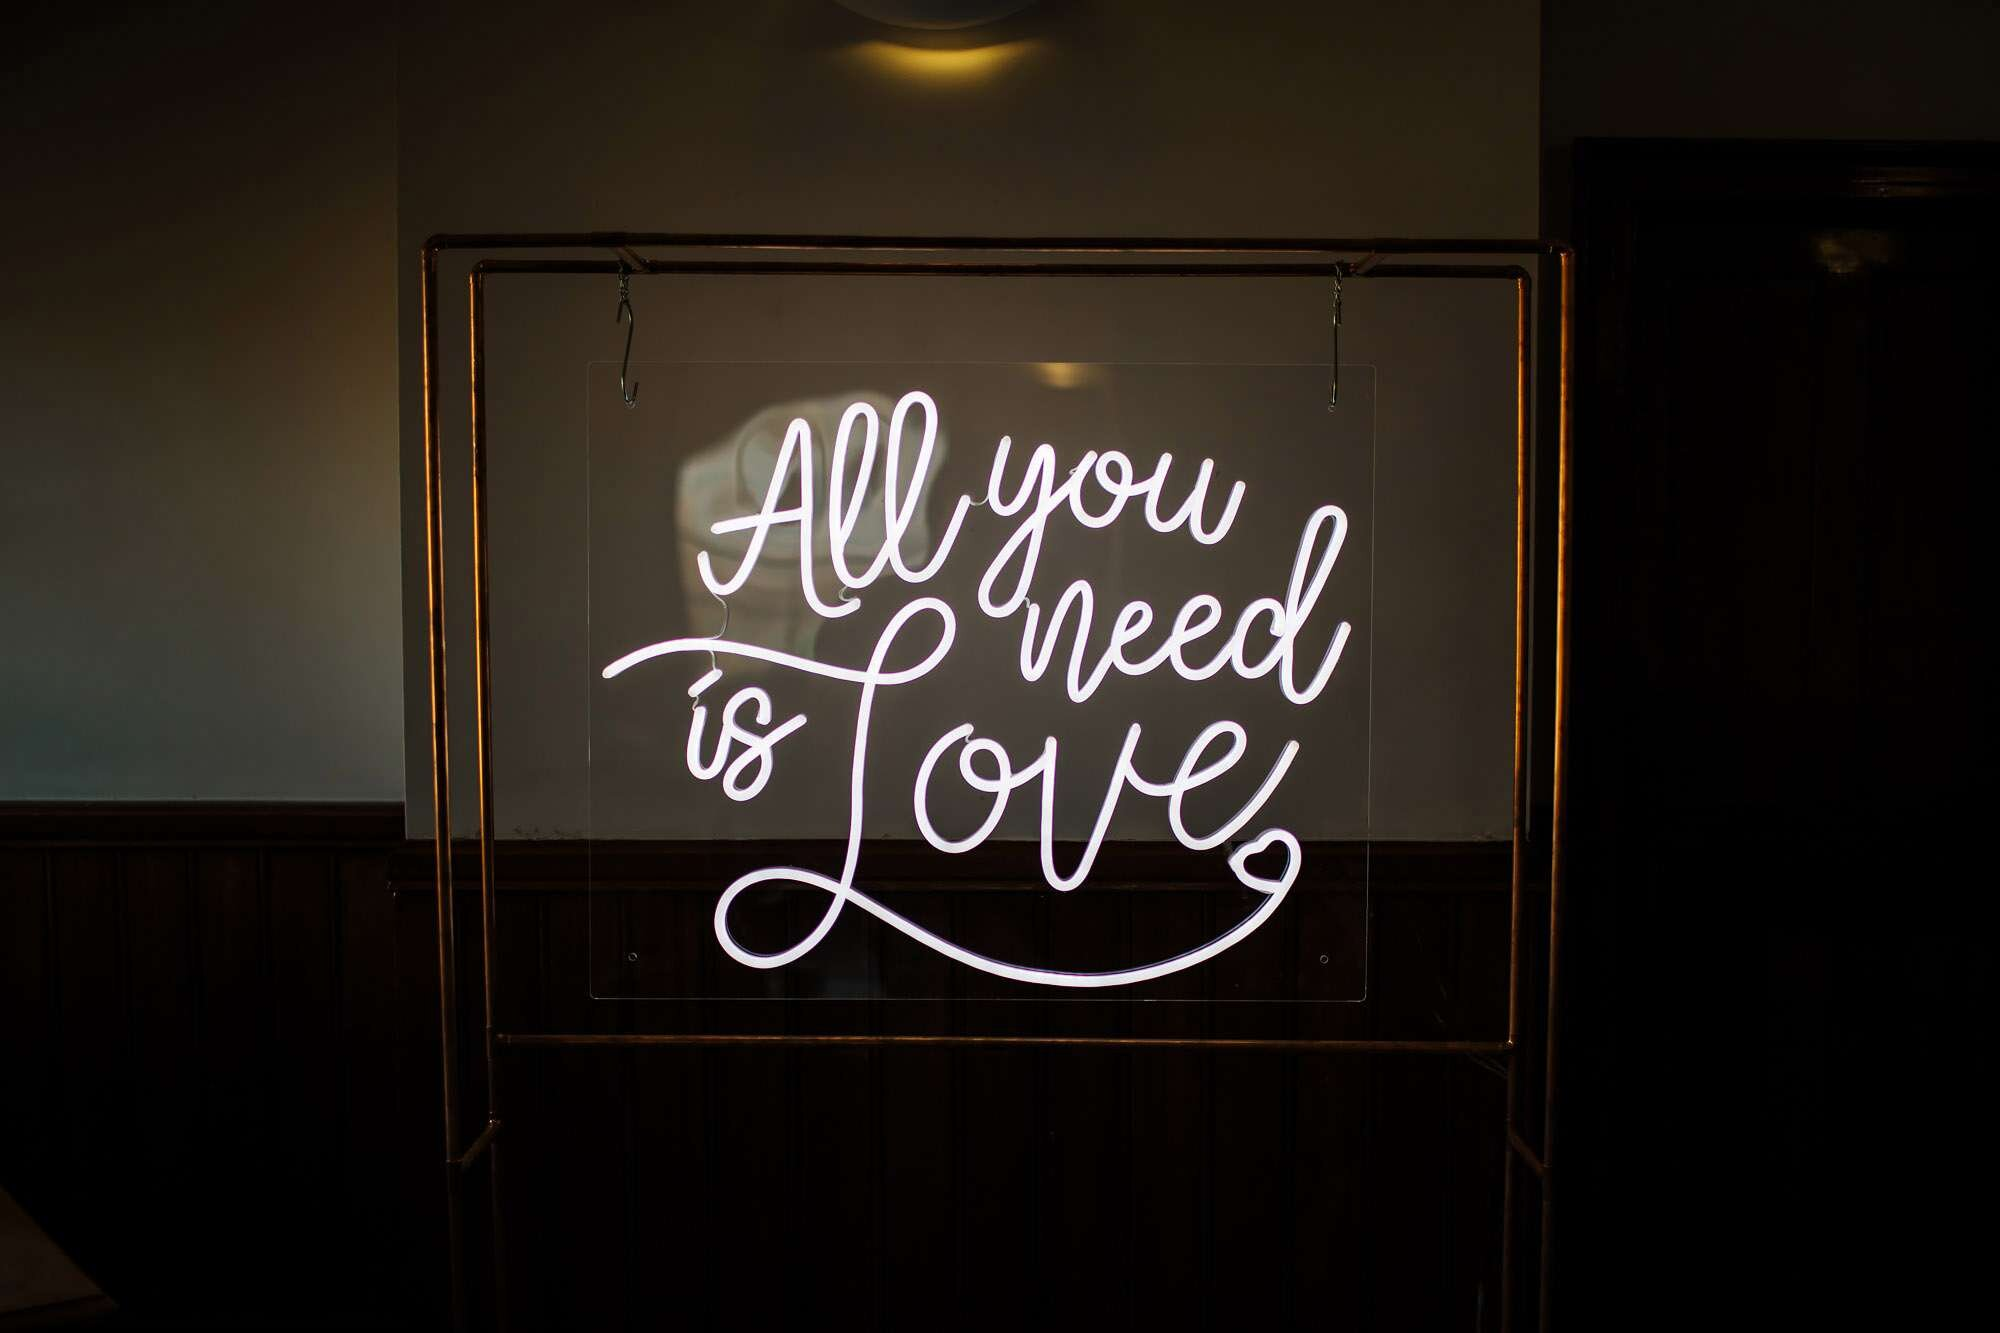 All you need is love neon sign at a wedding